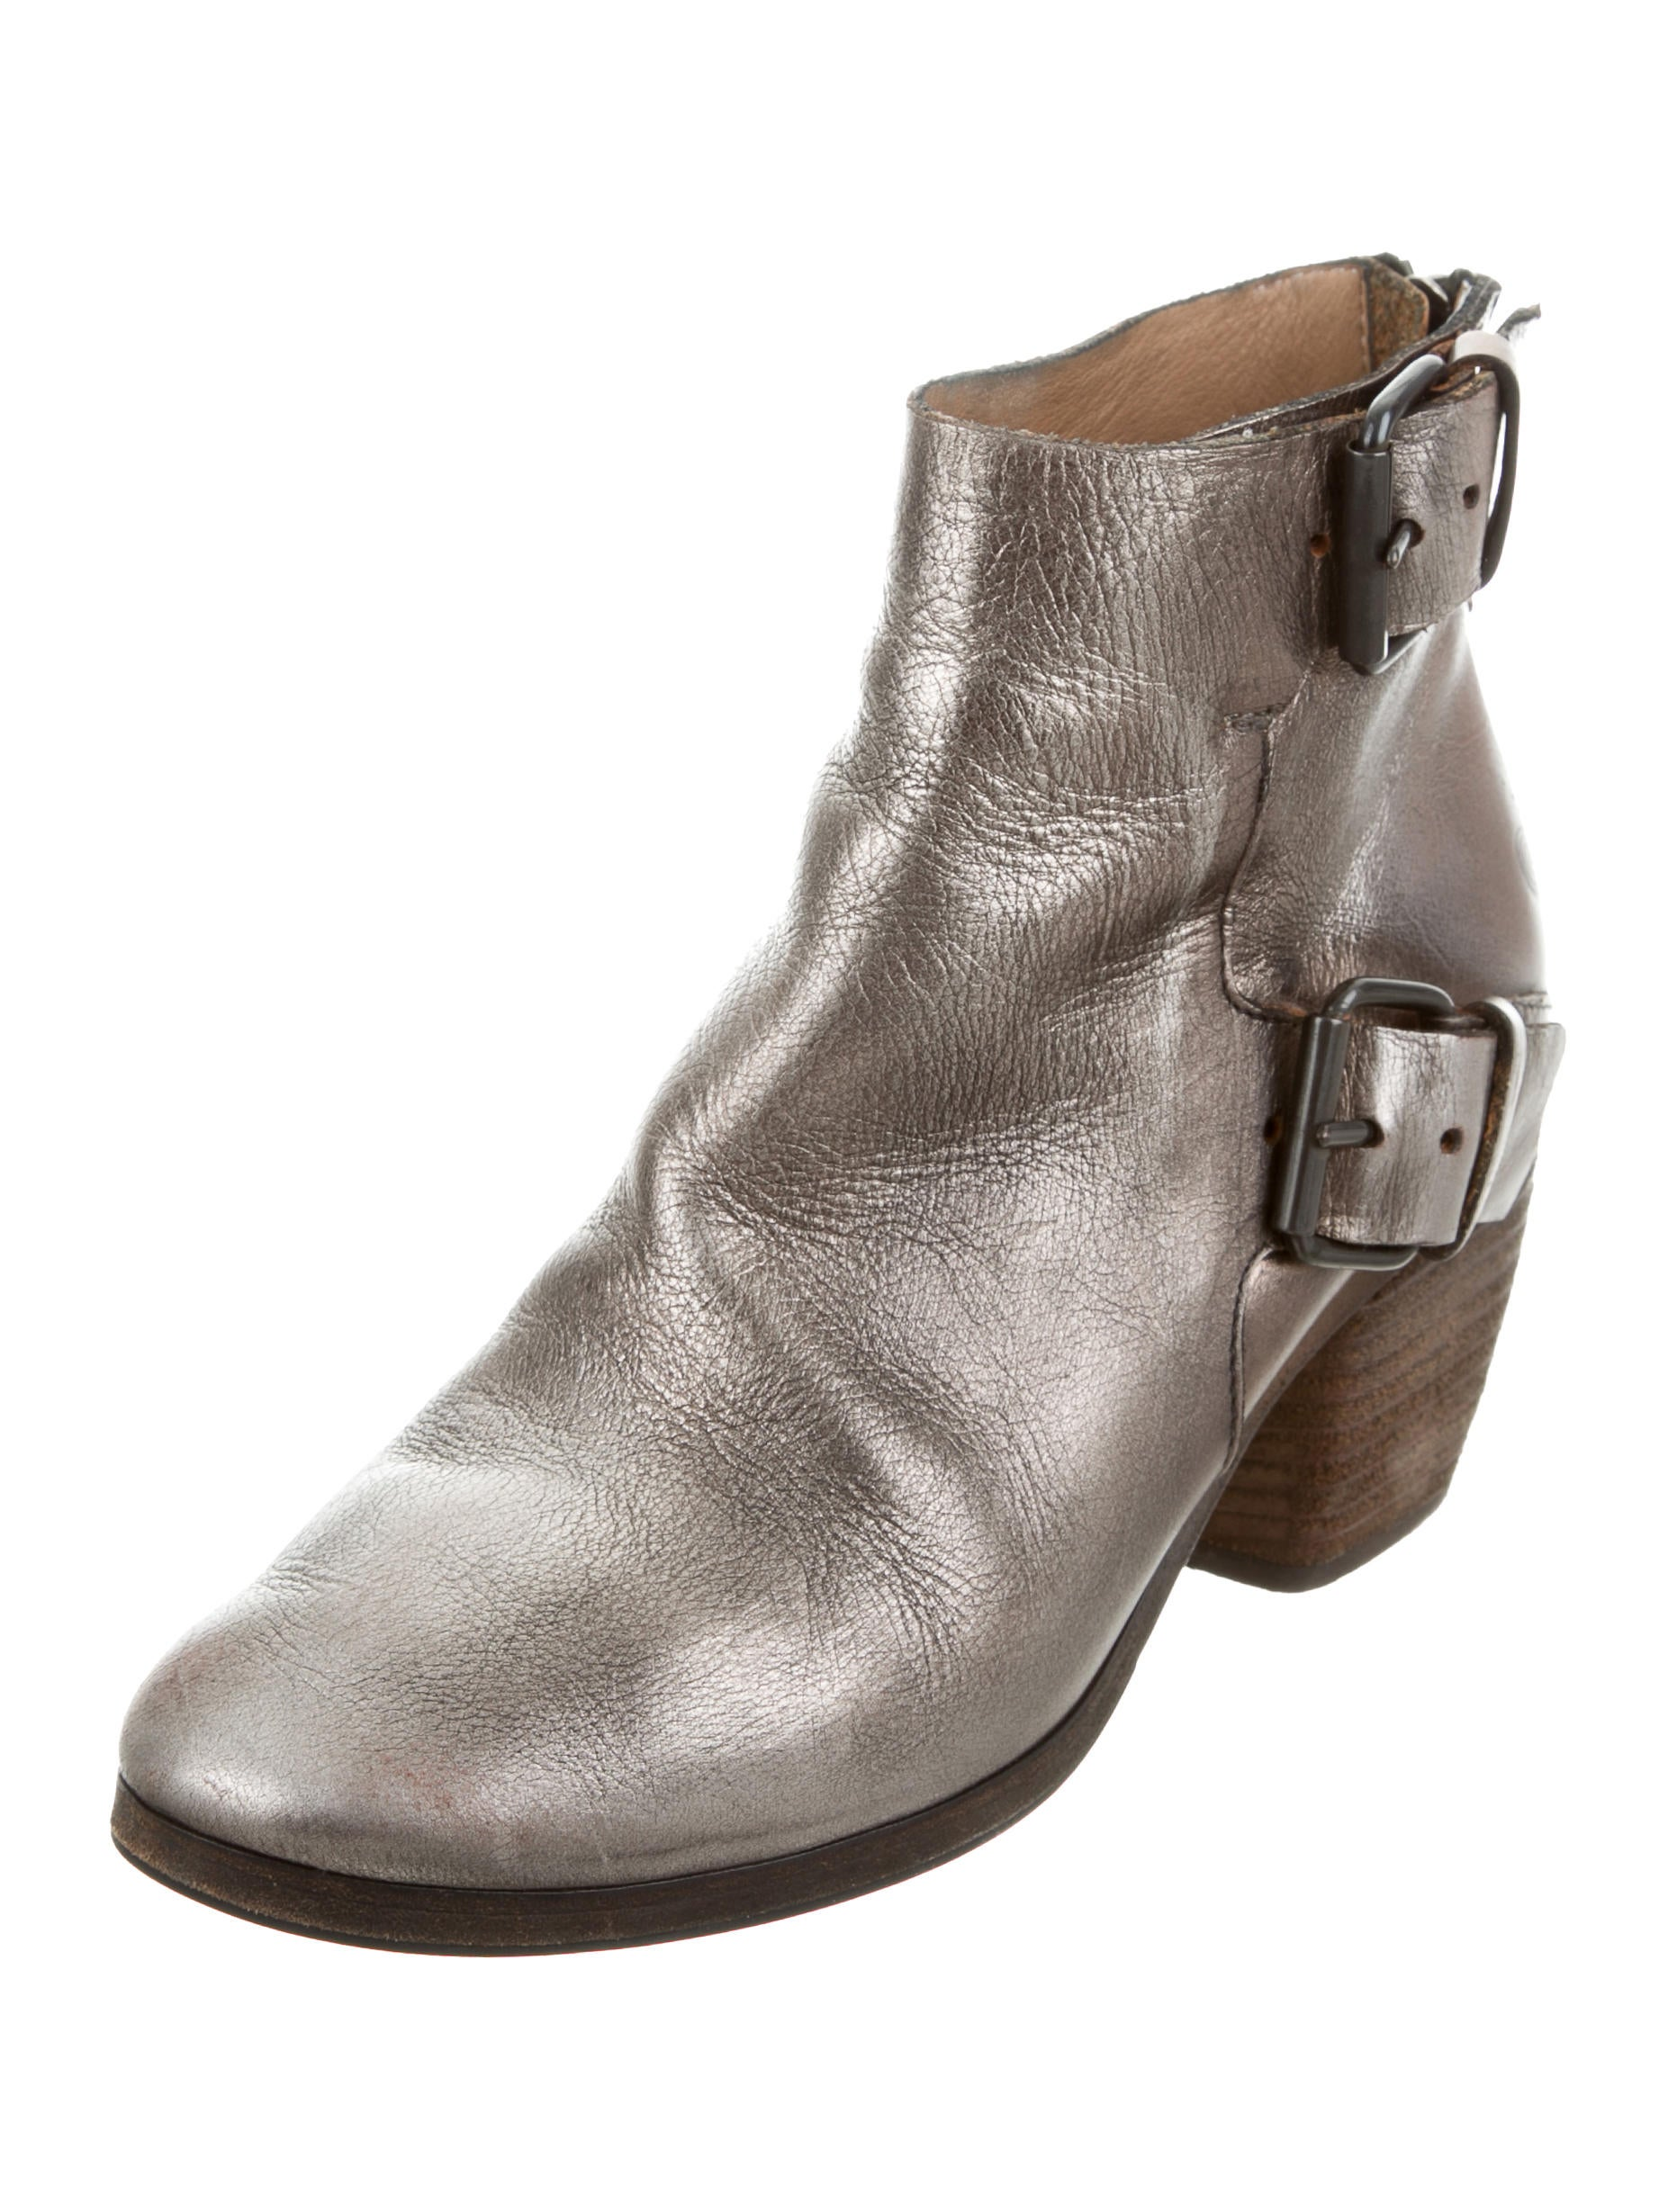 Shop eBay for great deals on Metallic Boots for Women. You'll find new or used products in Metallic Boots for Women on eBay. Free shipping on selected items.